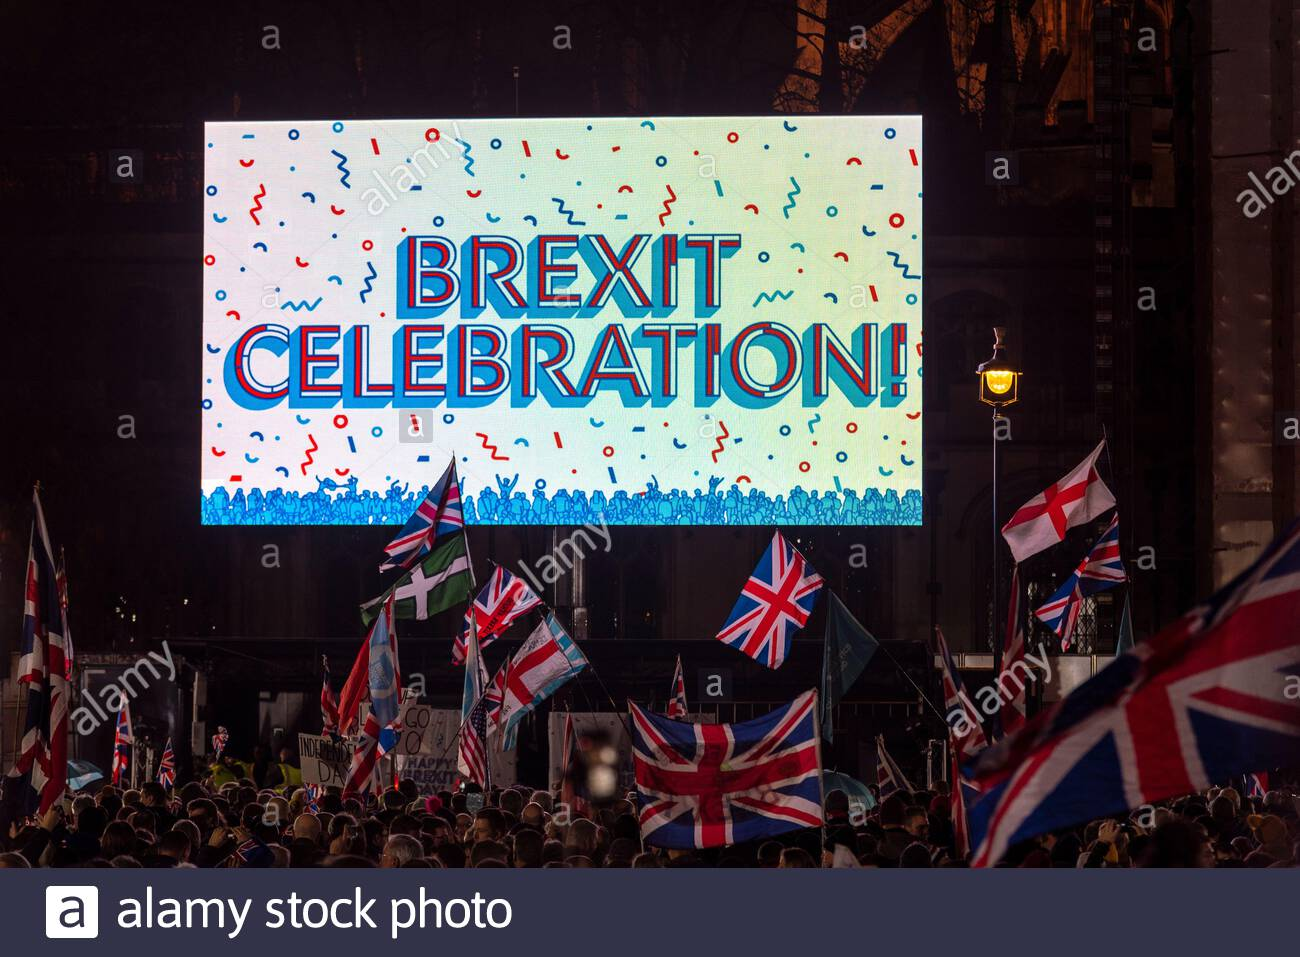 parliament-square-westminster-london-uk-31st-jan-2020-on-the-day-that-the-uk-is-set-to-leave-the-european-union-a-celebration-event-took-place-outside-parliament-led-by-leave-means-leave-beginning-at-9pm-the-party-welcomed-in-the-official-withdrawal-time-set-at-11pm-a-large-video-screen-ran-pieces-from-the-history-of-brexit-with-no-bongs-from-big-ben-in-the-elizabeth-tower-of-the-palace-of-westminster-available-a-recording-was-played-credit-avpicsalamy-live-news-2AT9PTN.jpg